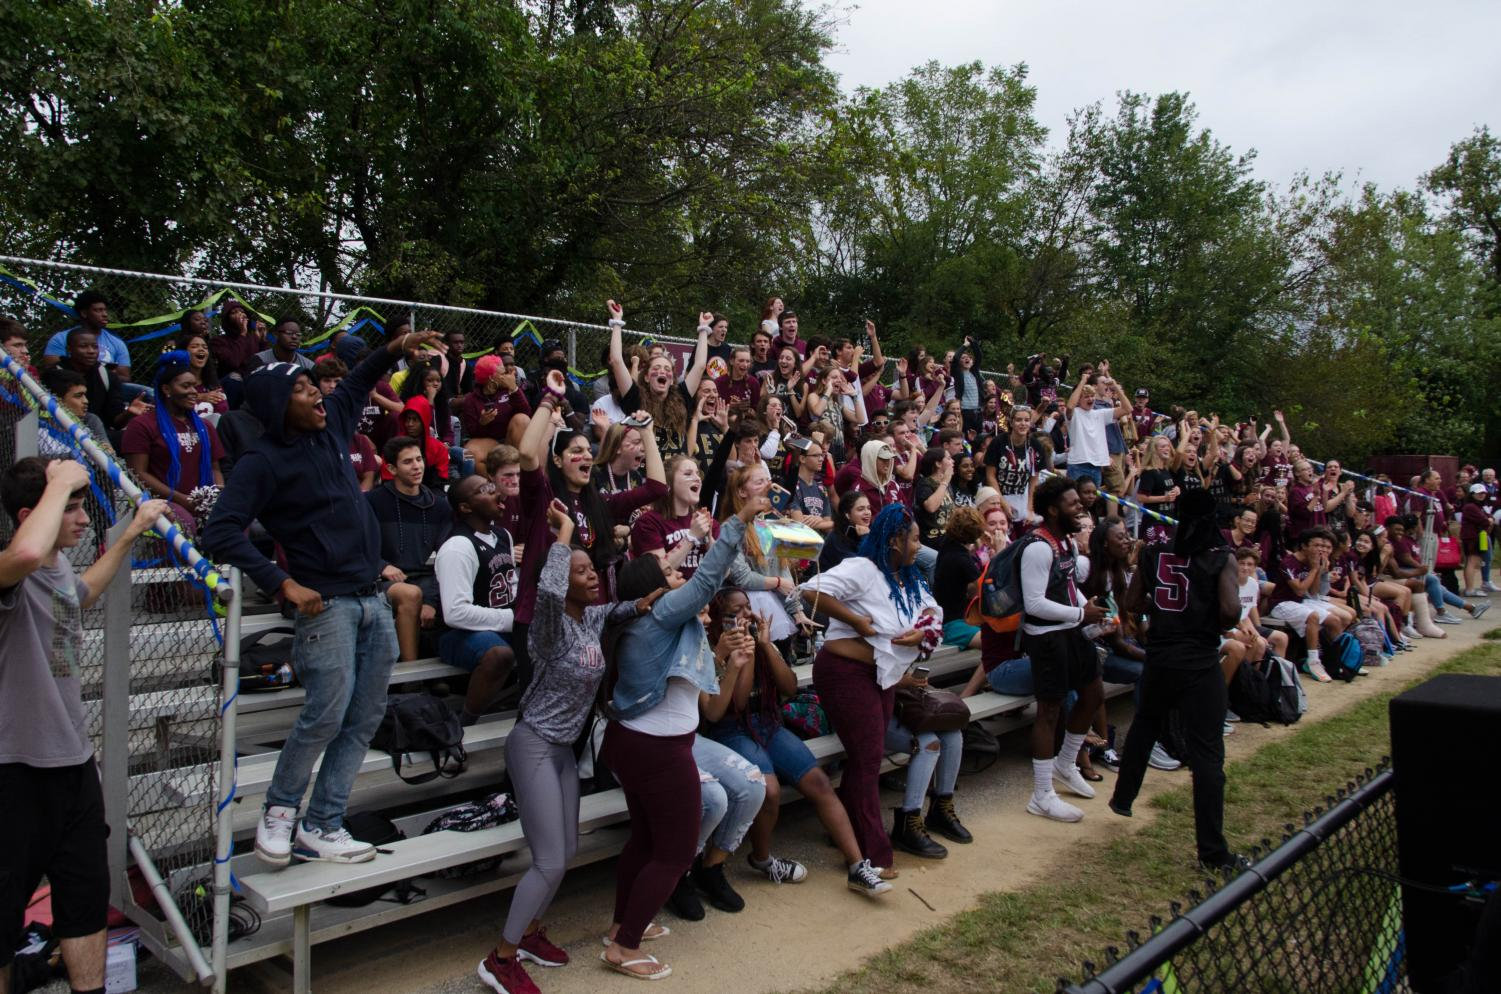 Look at our senior class go! They sure are full of school spirit!